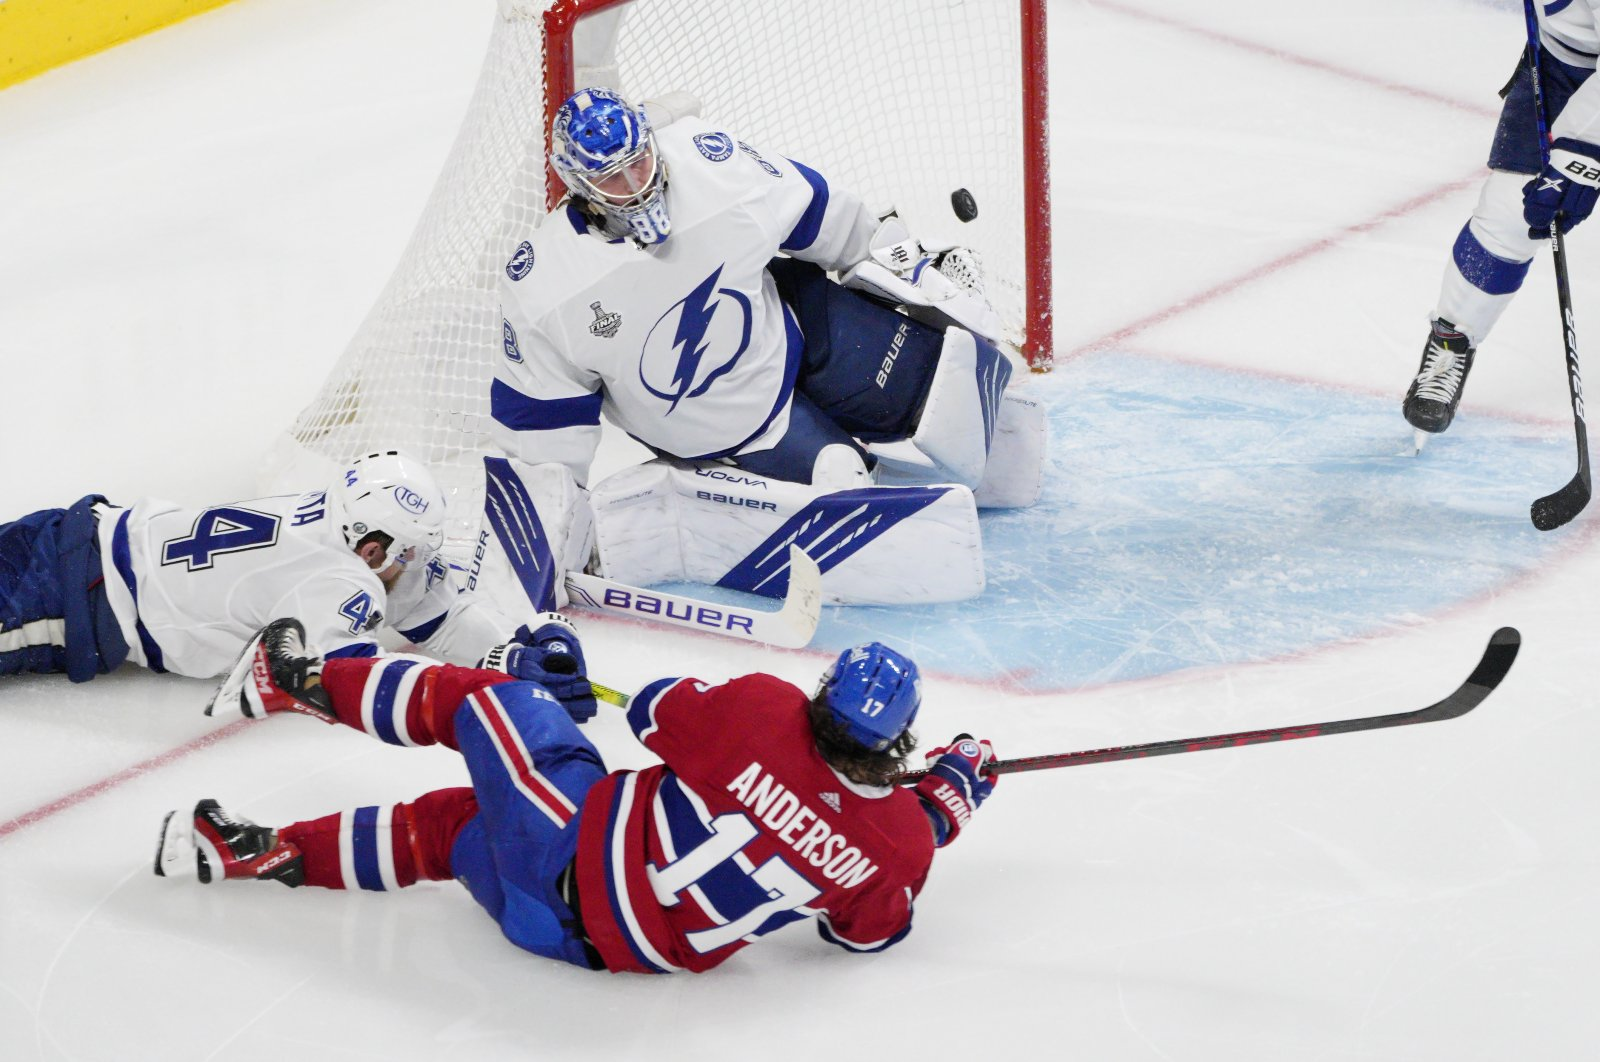 Montreal Canadiens Josh Anderson (2nd L) scores past Tampa Bay Lightning goaltender Andrei Vasilevskiy (2nd R) during overtime of Game 4 of the Stanley Cup final in Montreal, Canada, July 5, 2021. (AP Photo)